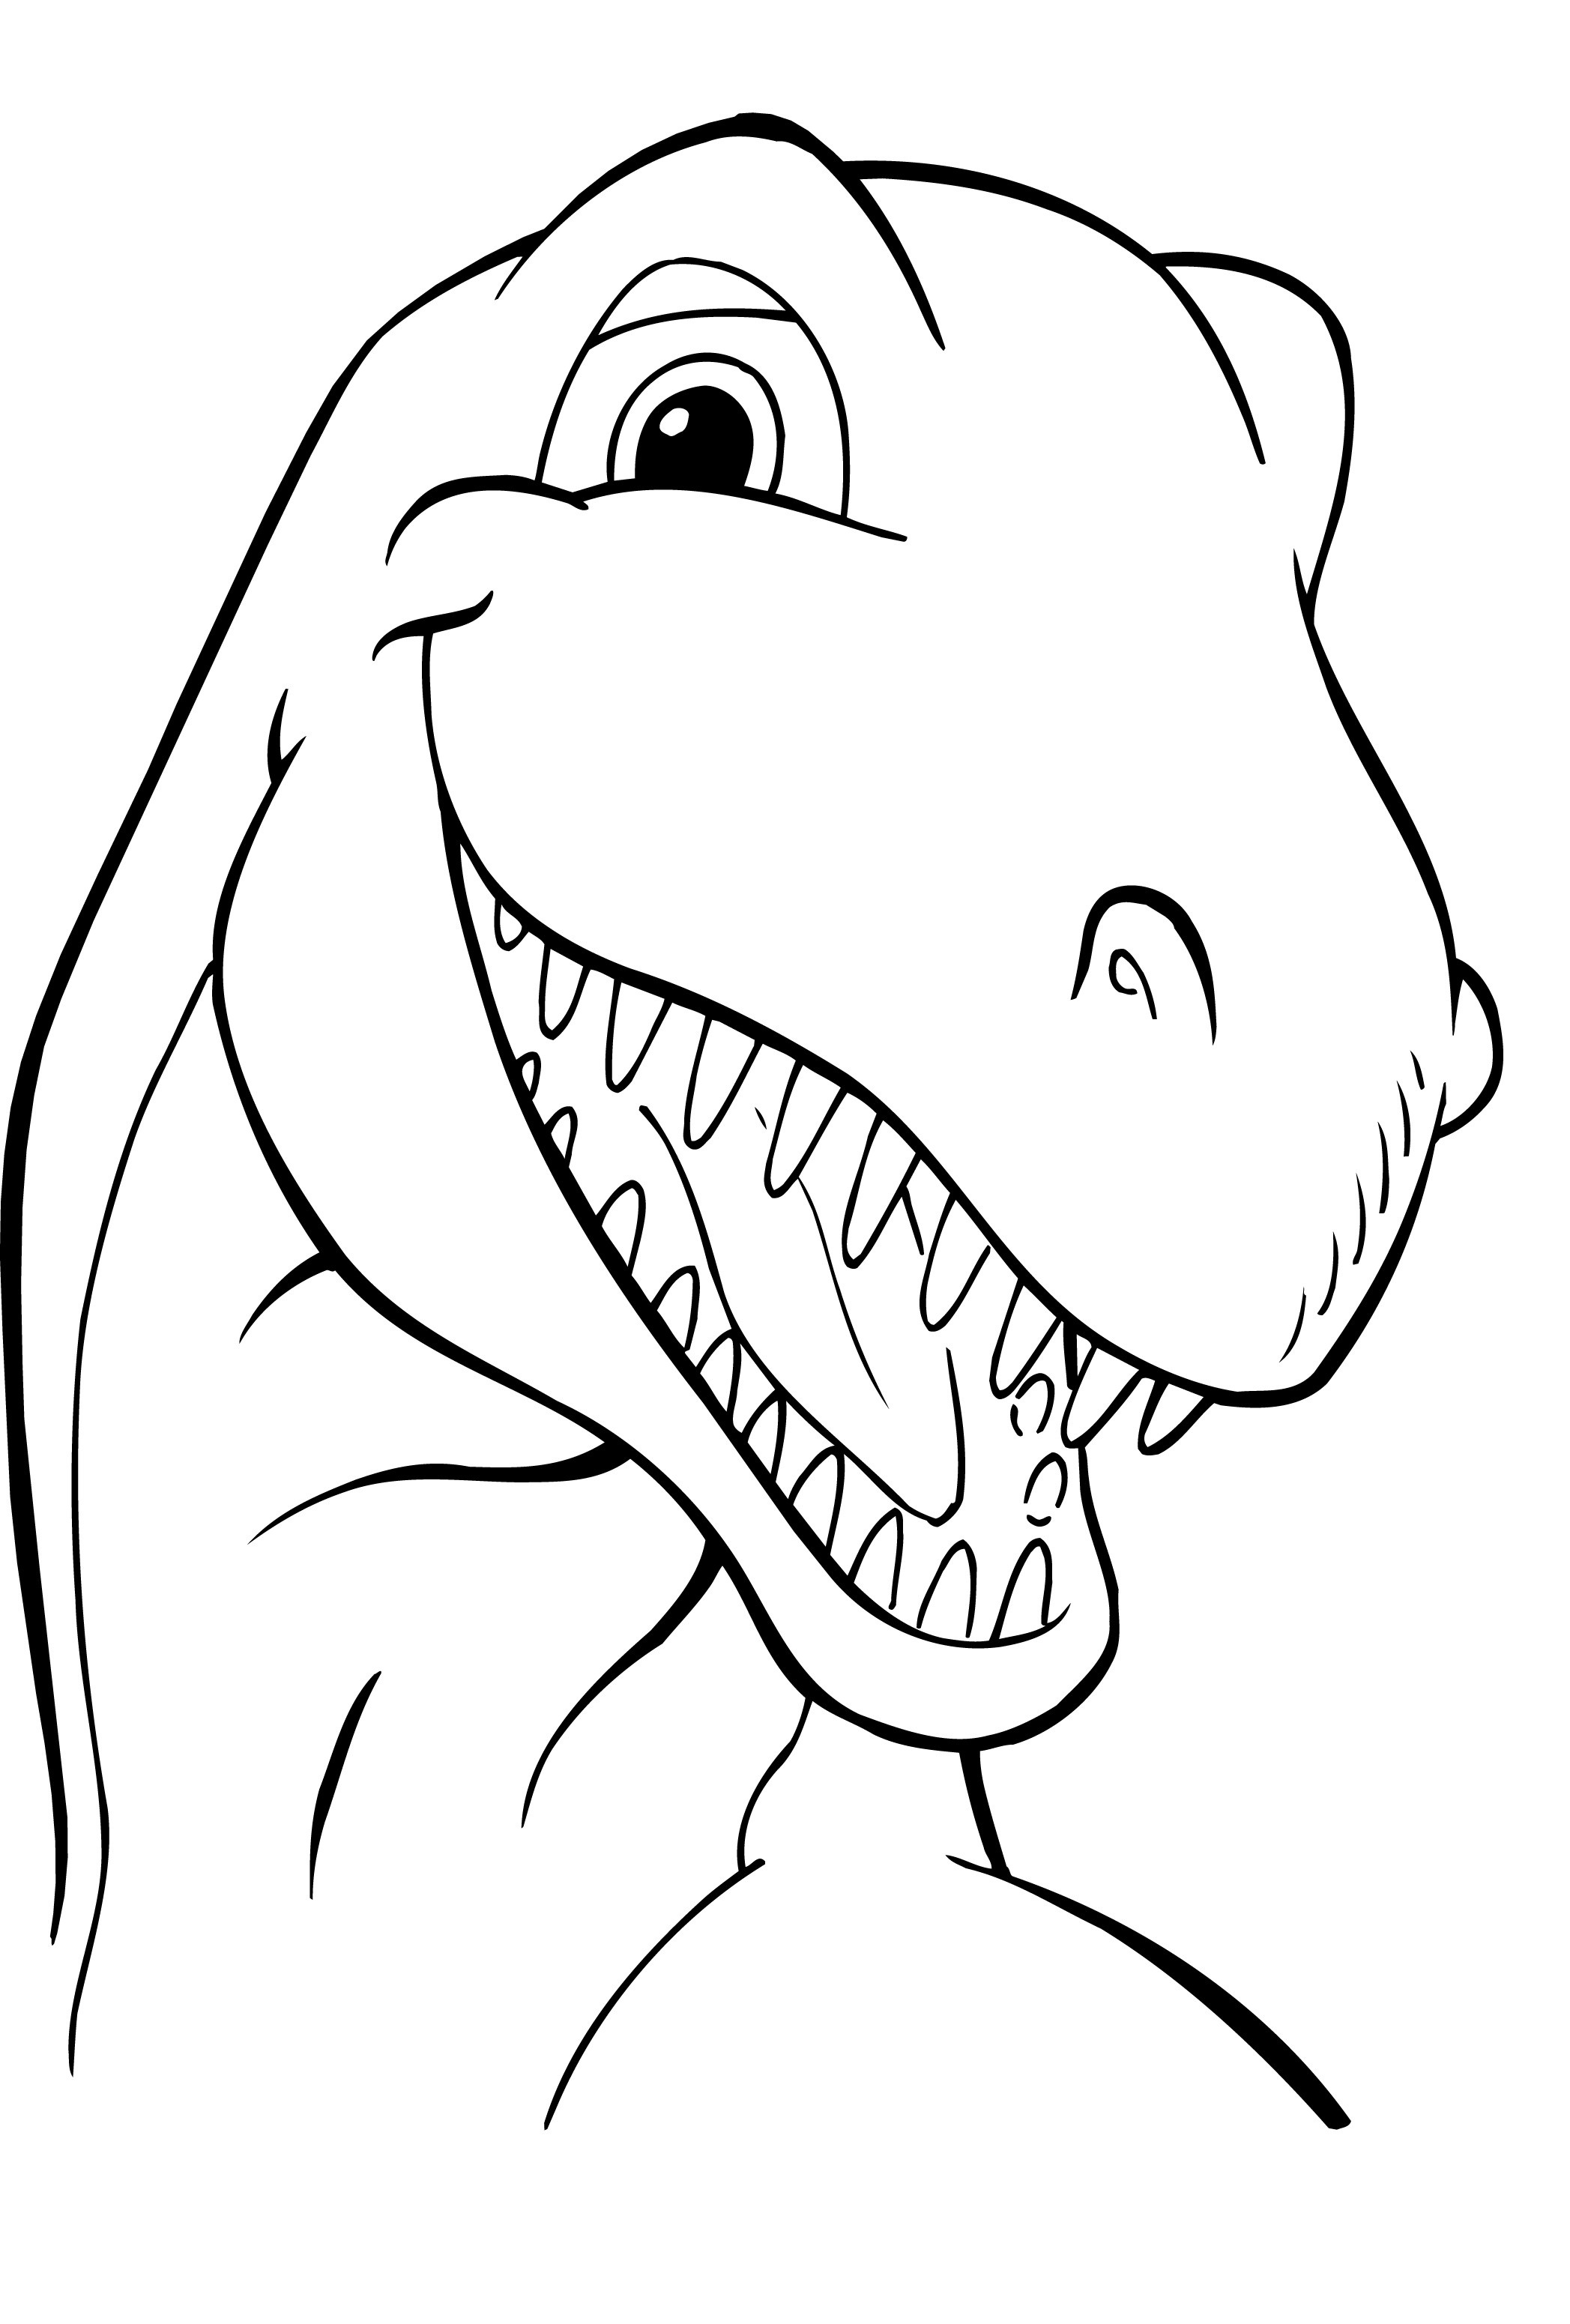 dinosaur pictures to colour in coloring pages dinosaur free printable coloring pages dinosaur colour in pictures to